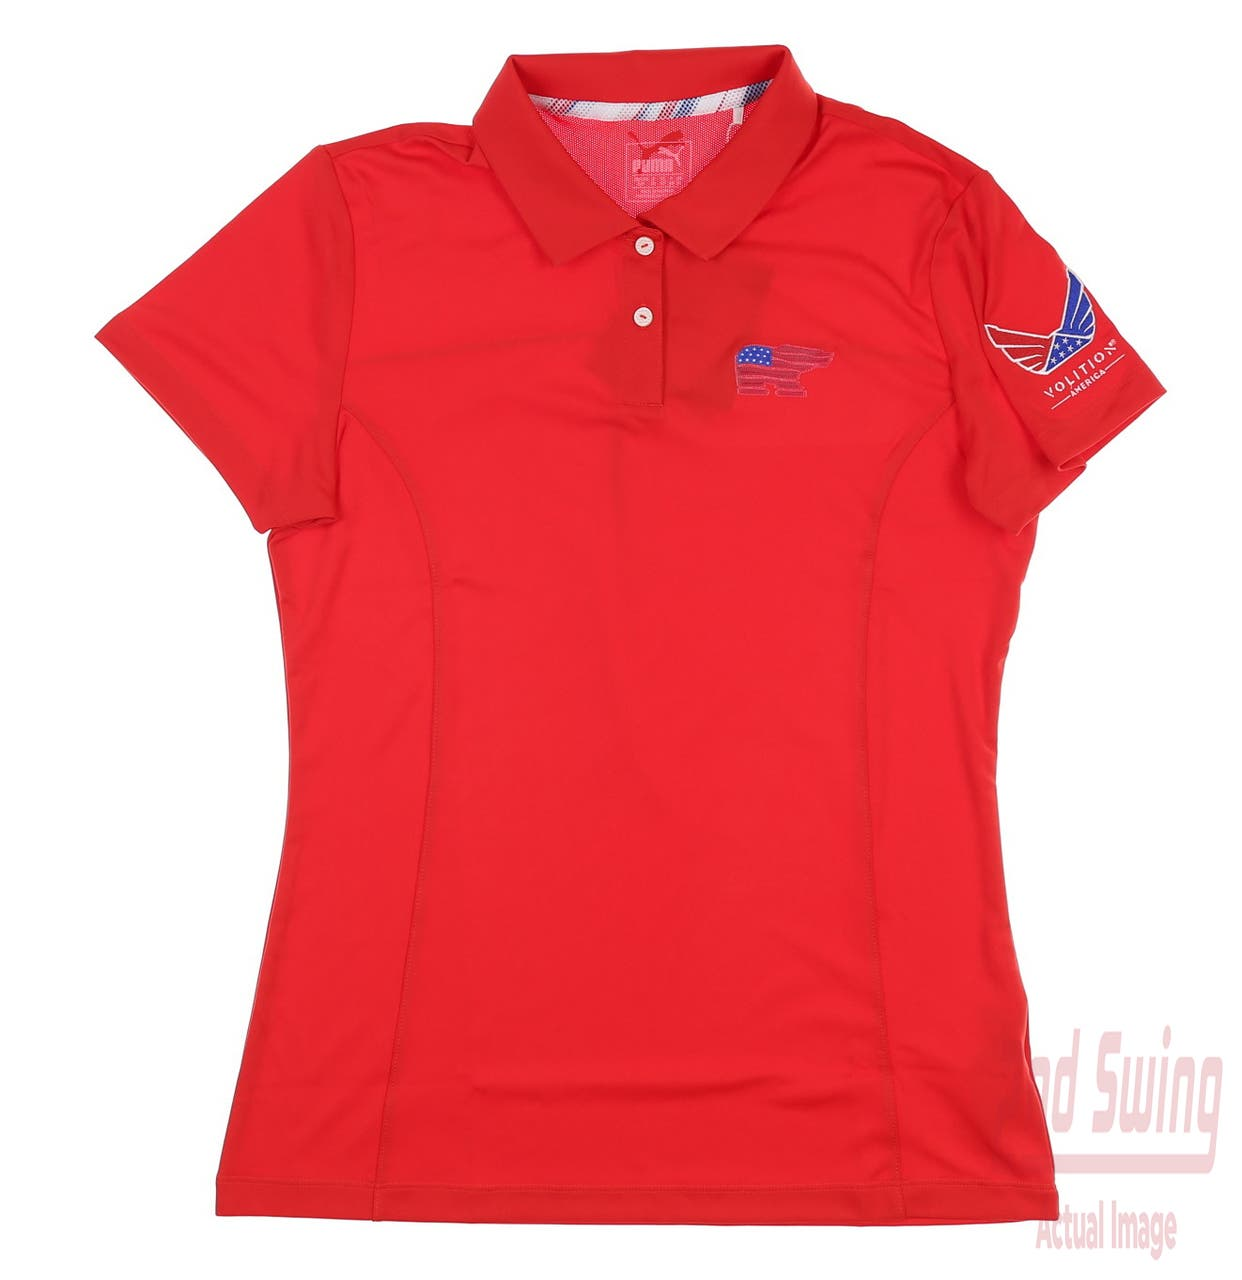 New W/ Logo Womens Puma Volition Polo Small S Red MSRP $55 575148 02